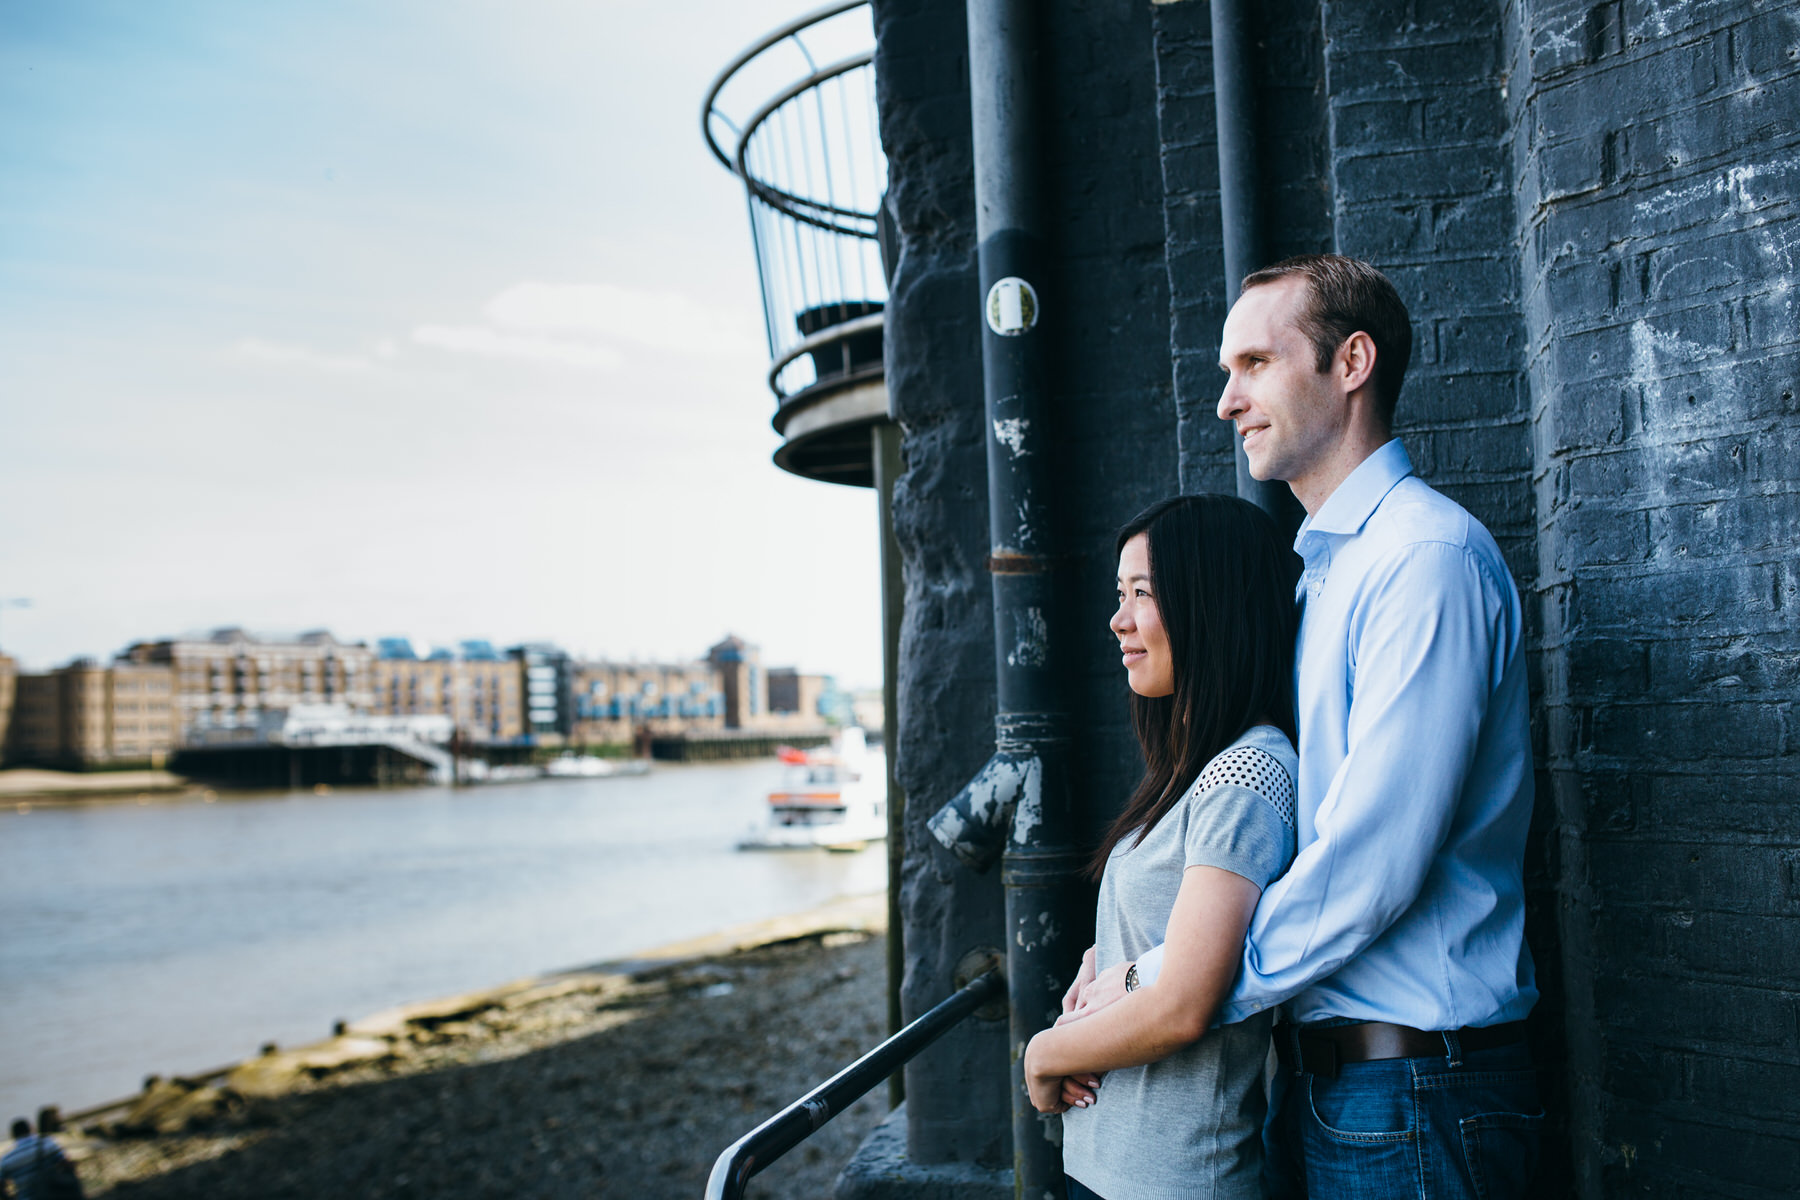 24 looking over Thames river engagement session London.jpg